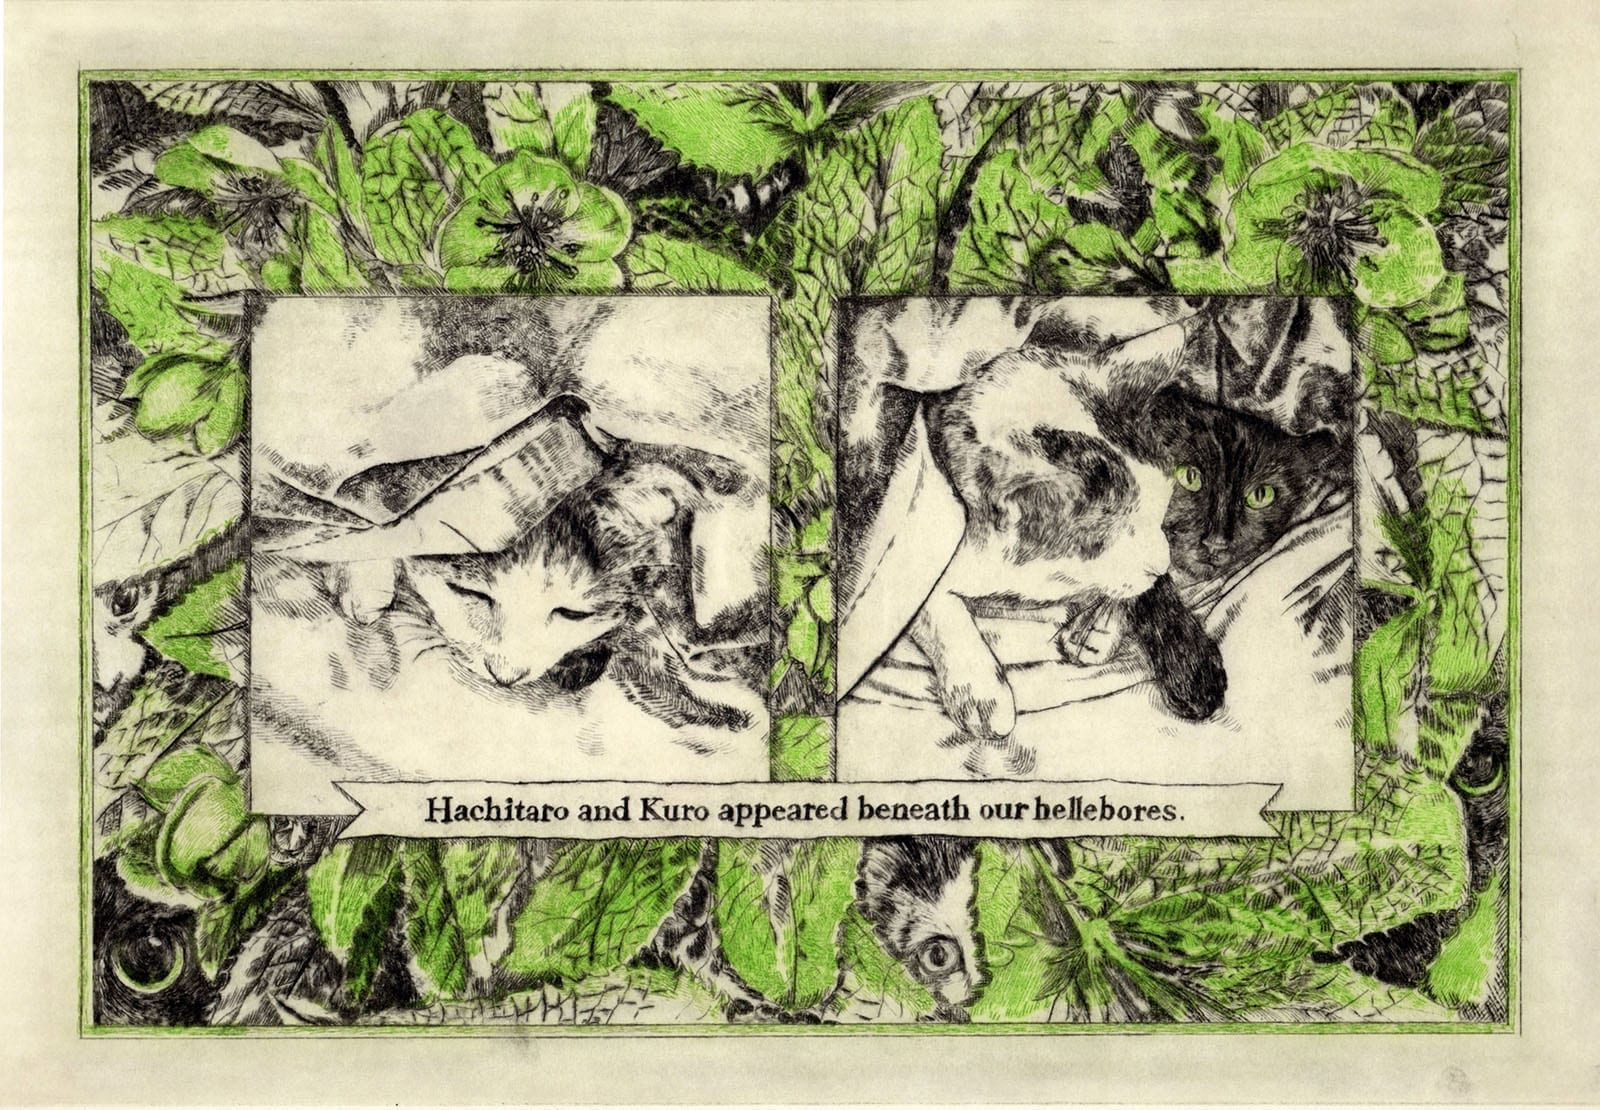 Hachi and Kuro appeared beneath our hellebores (drypoint etching by Yaemi Shigyo)